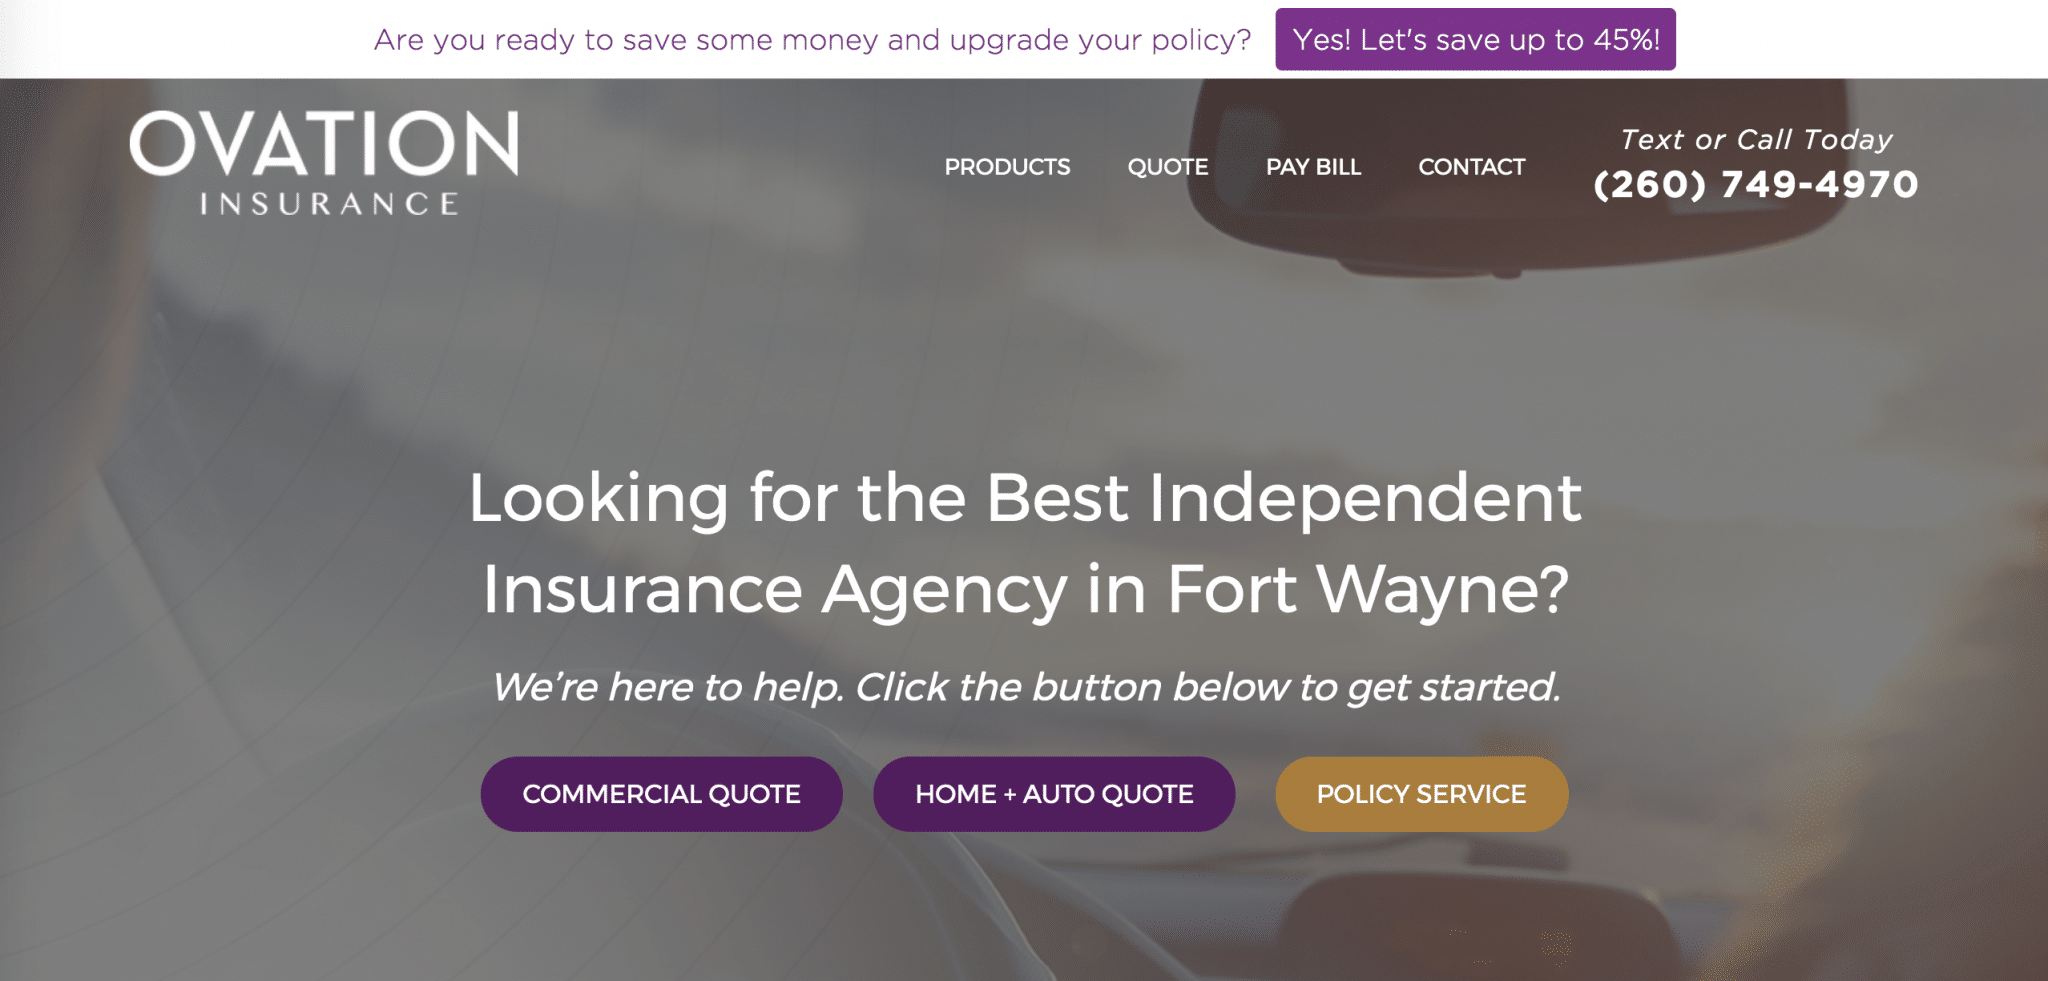 Ovation Insurance website